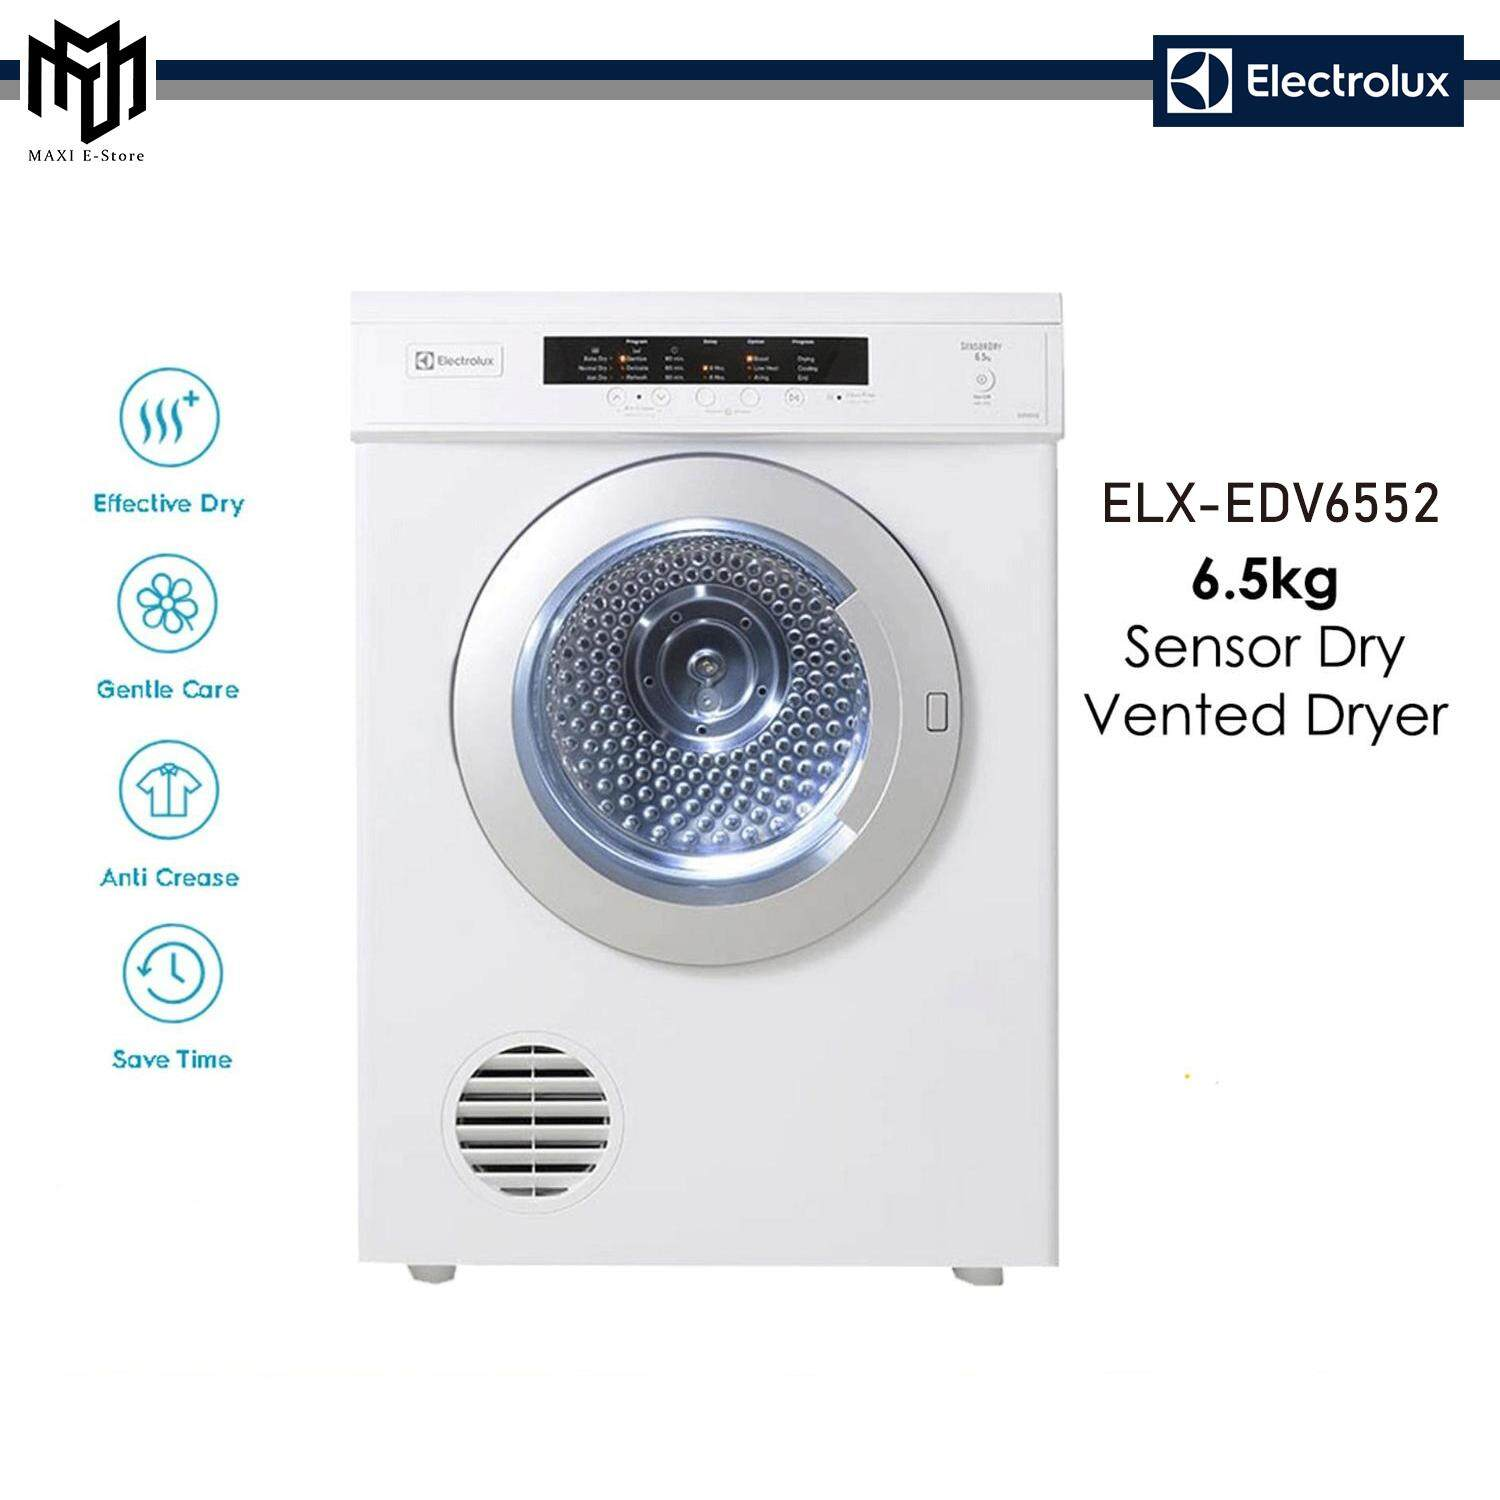 Electrolux Washers   Dryers price in Malaysia - Best Electrolux ... fcb286e54b